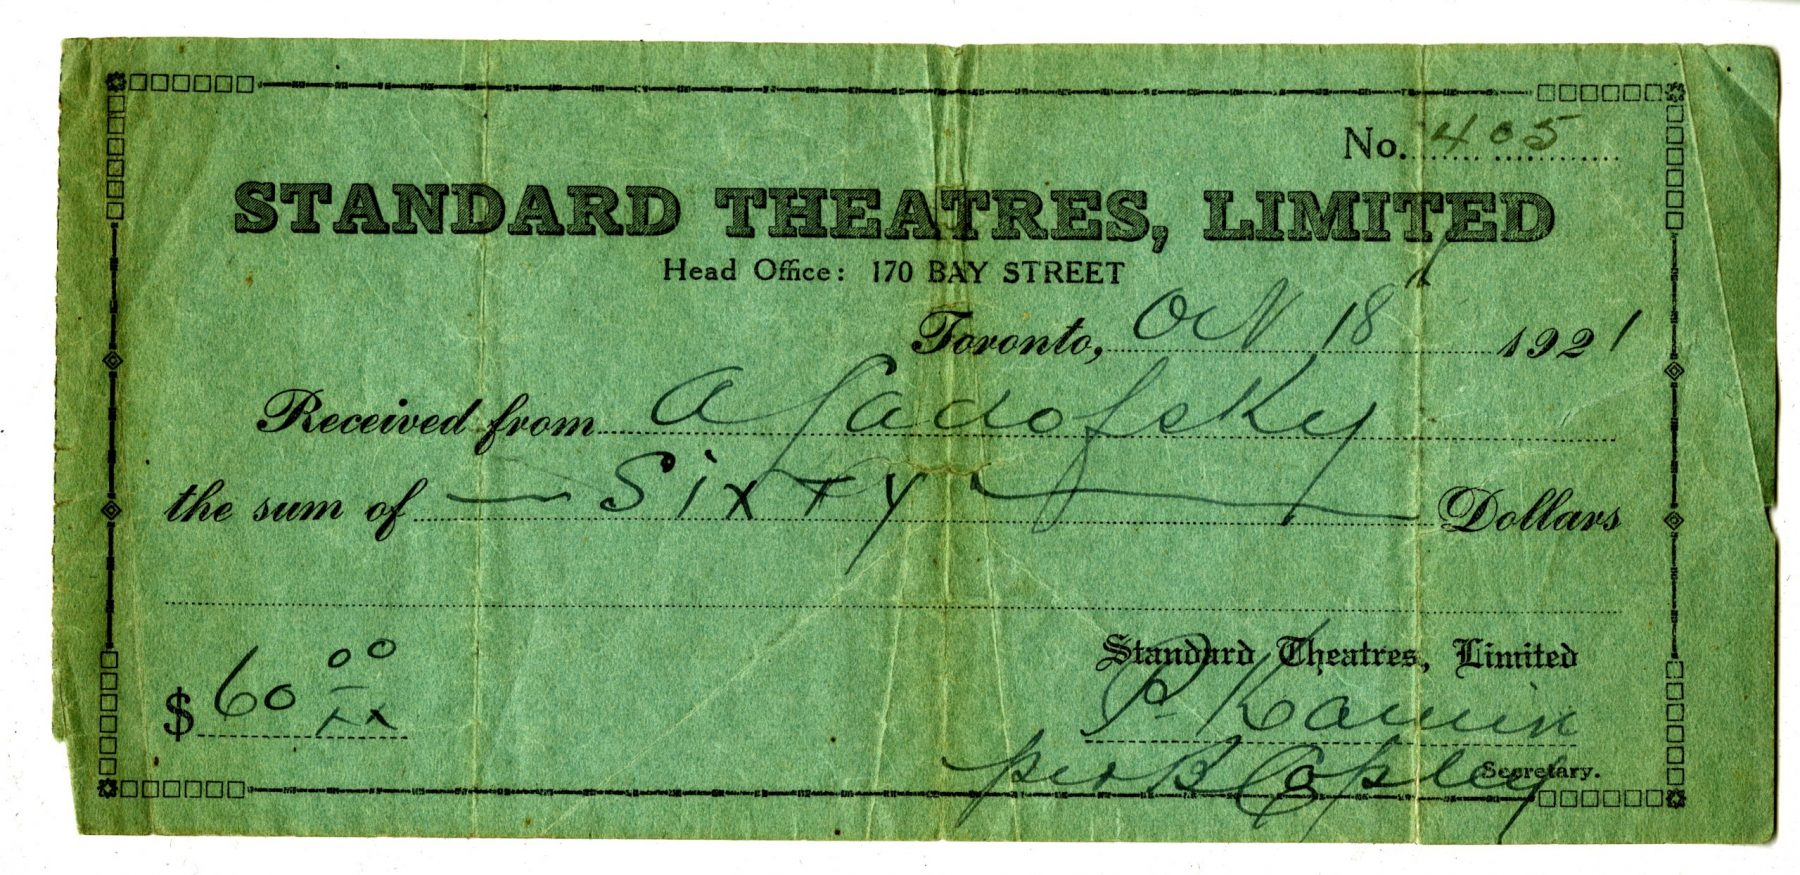 A Standard Theatres Ltd. receipt for $60. This receipt was for the purchase of shares in the theatre, which is the method the company used to fundraise for its construction. OJA, fonds 83, file 5.